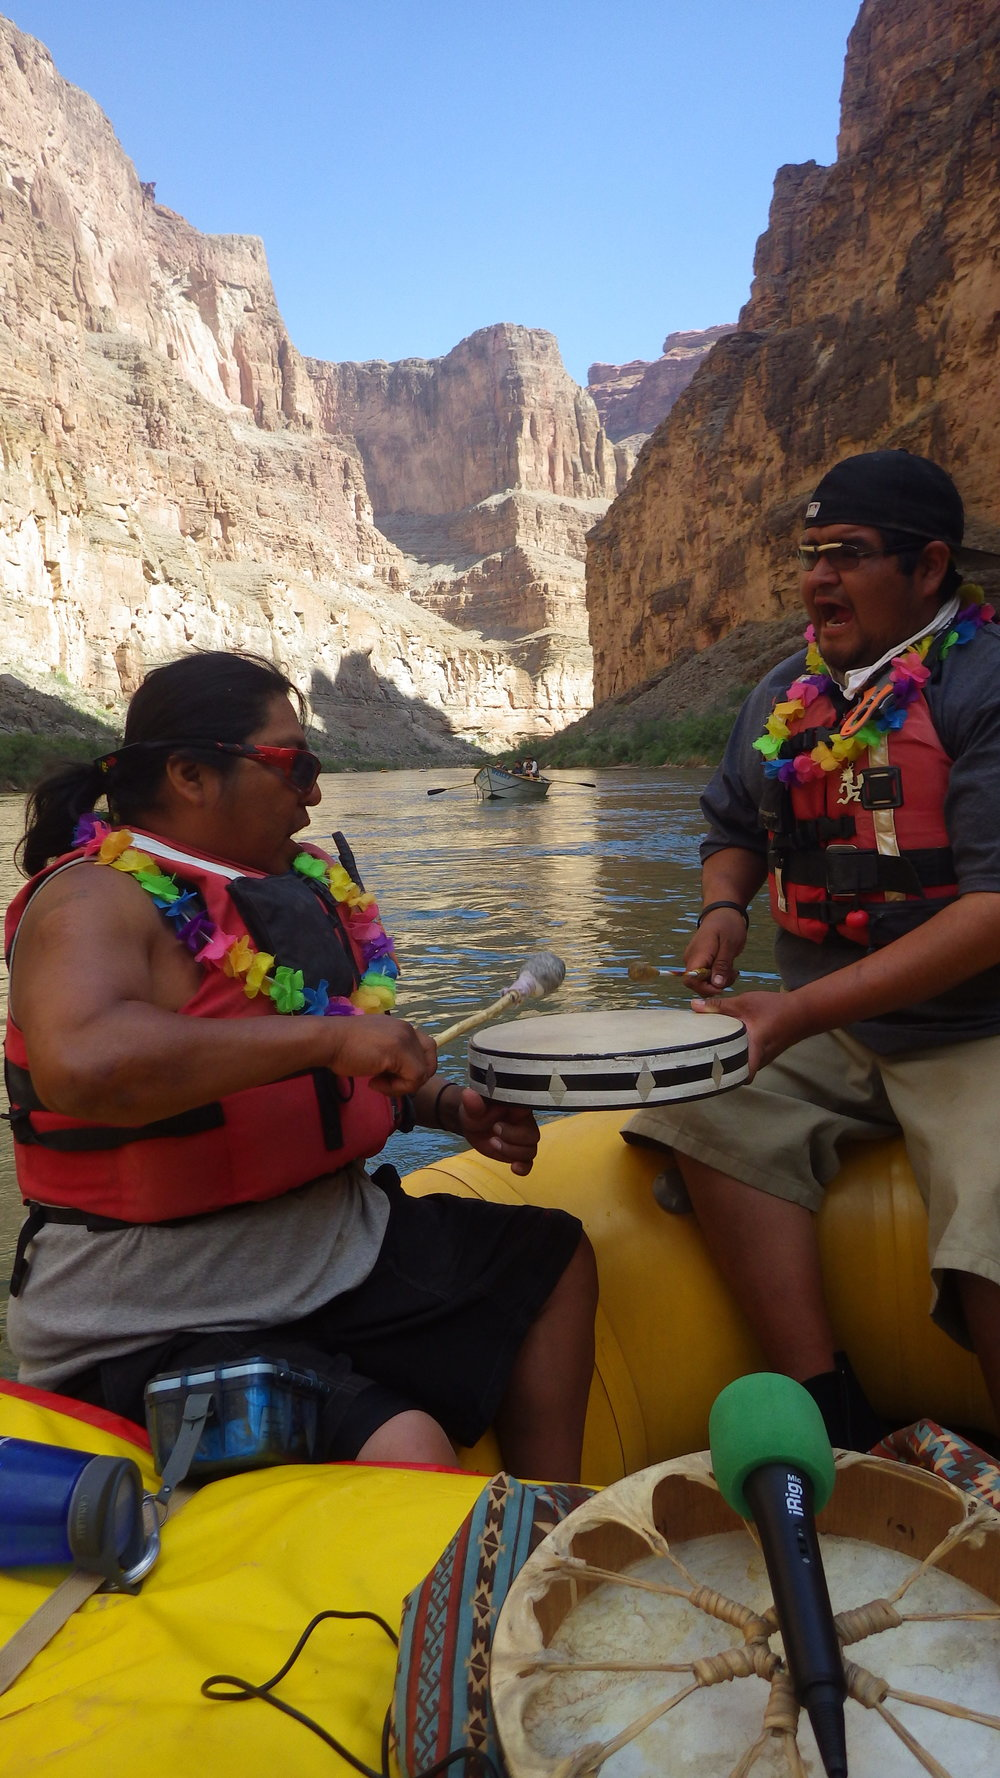 Mandela interview with two members of the Hualapai Nation, Clayborn & Brave. Recorded on The Colorado River a few miles upstream of Lava Falls, these two talented musicians will play drums & sing traditional Bird Songs while they tell the story of how The Grand Canyon came to be according to the Native Americans in & around The Grand Canyon.